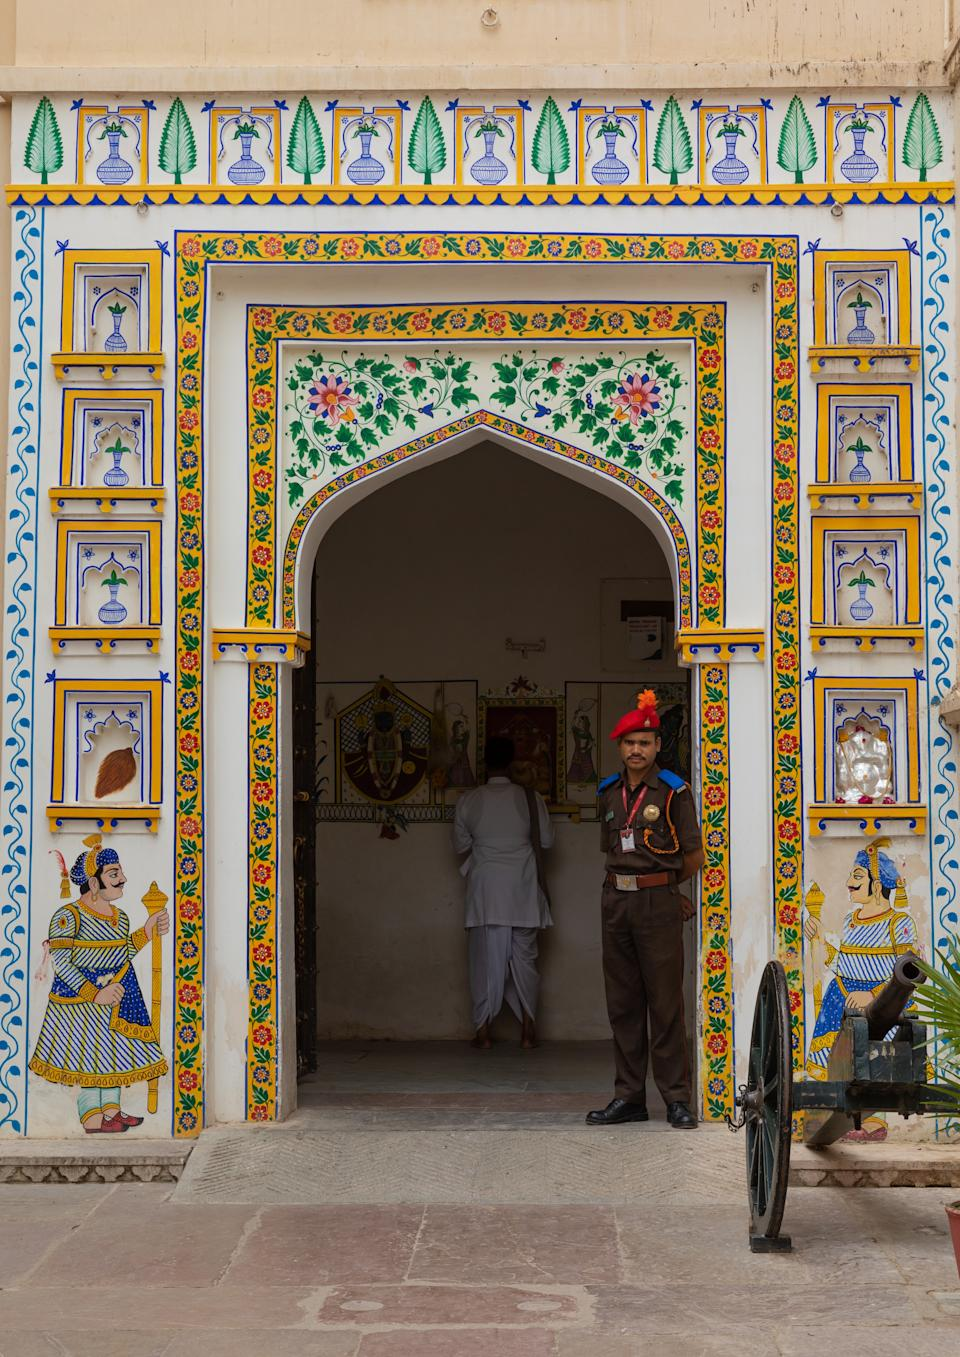 The palaces within the complex are interlinked through a number of chowks or quadrangles with zigzag corridors, planned in this fashion to avoid surprise attacks by enemies.